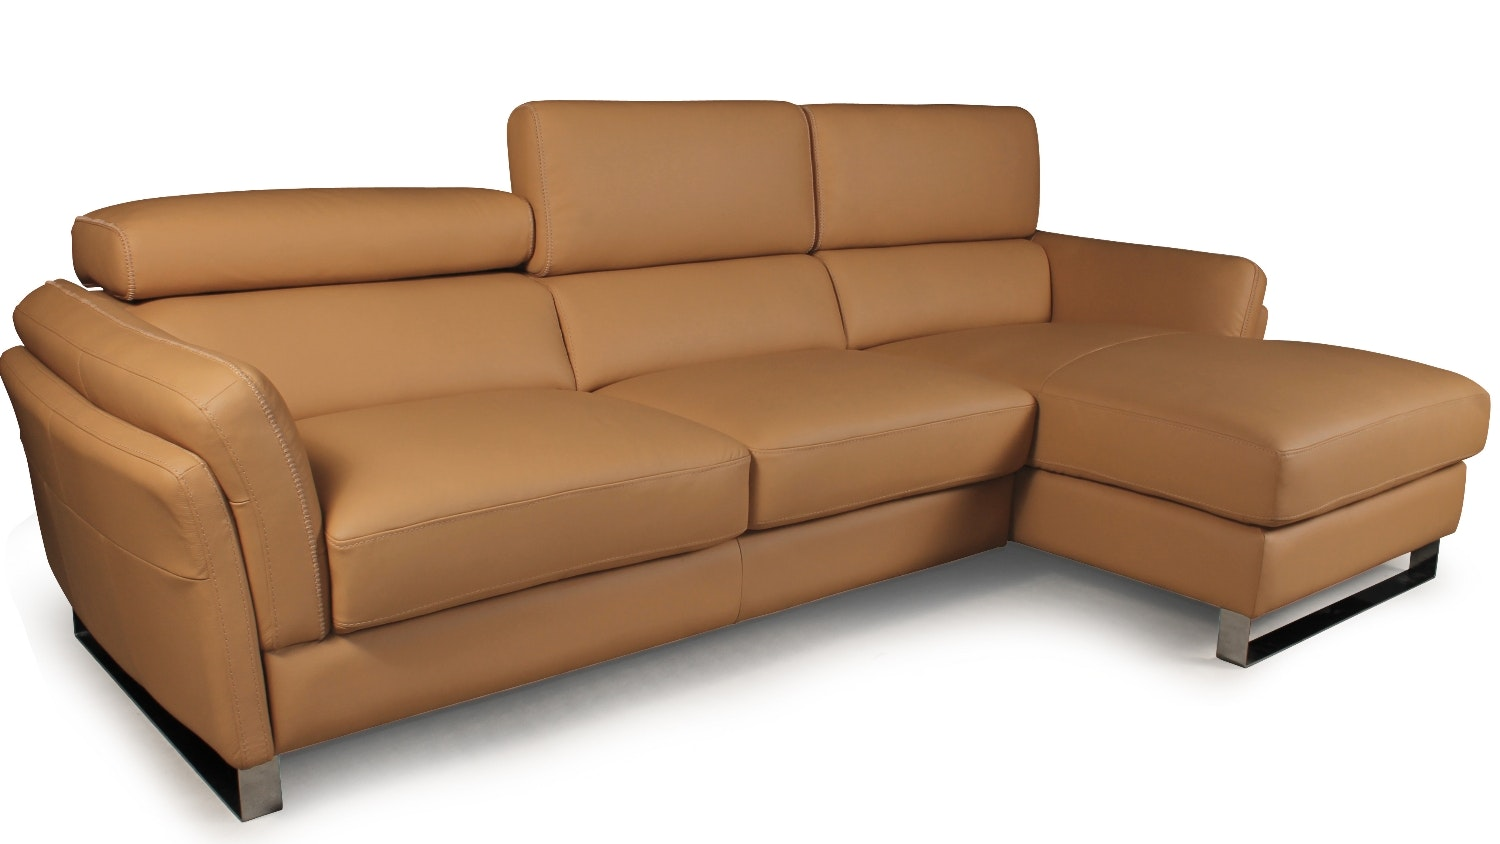 Harper 3 Seater Sofa with Chaise Lounge  sc 1 st  Harvey Norman : harvey norman chaise - Sectionals, Sofas & Couches